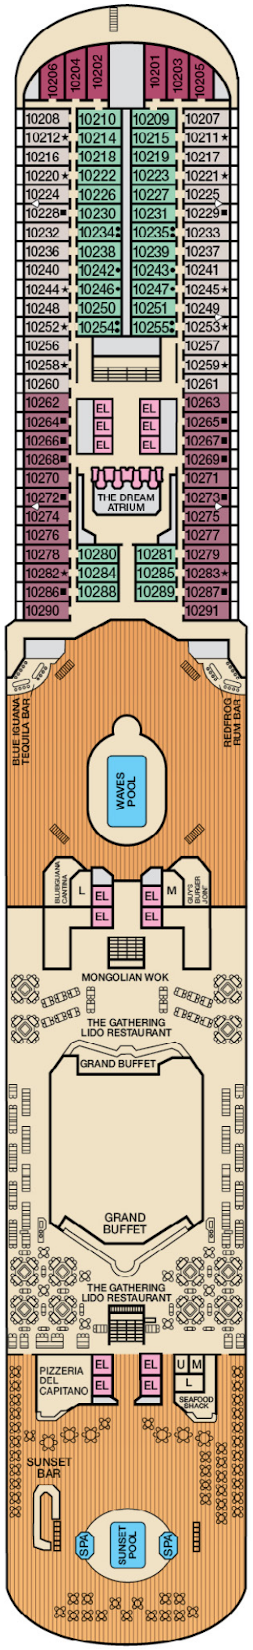 Carnival Dream Lido Deck Deck Plan